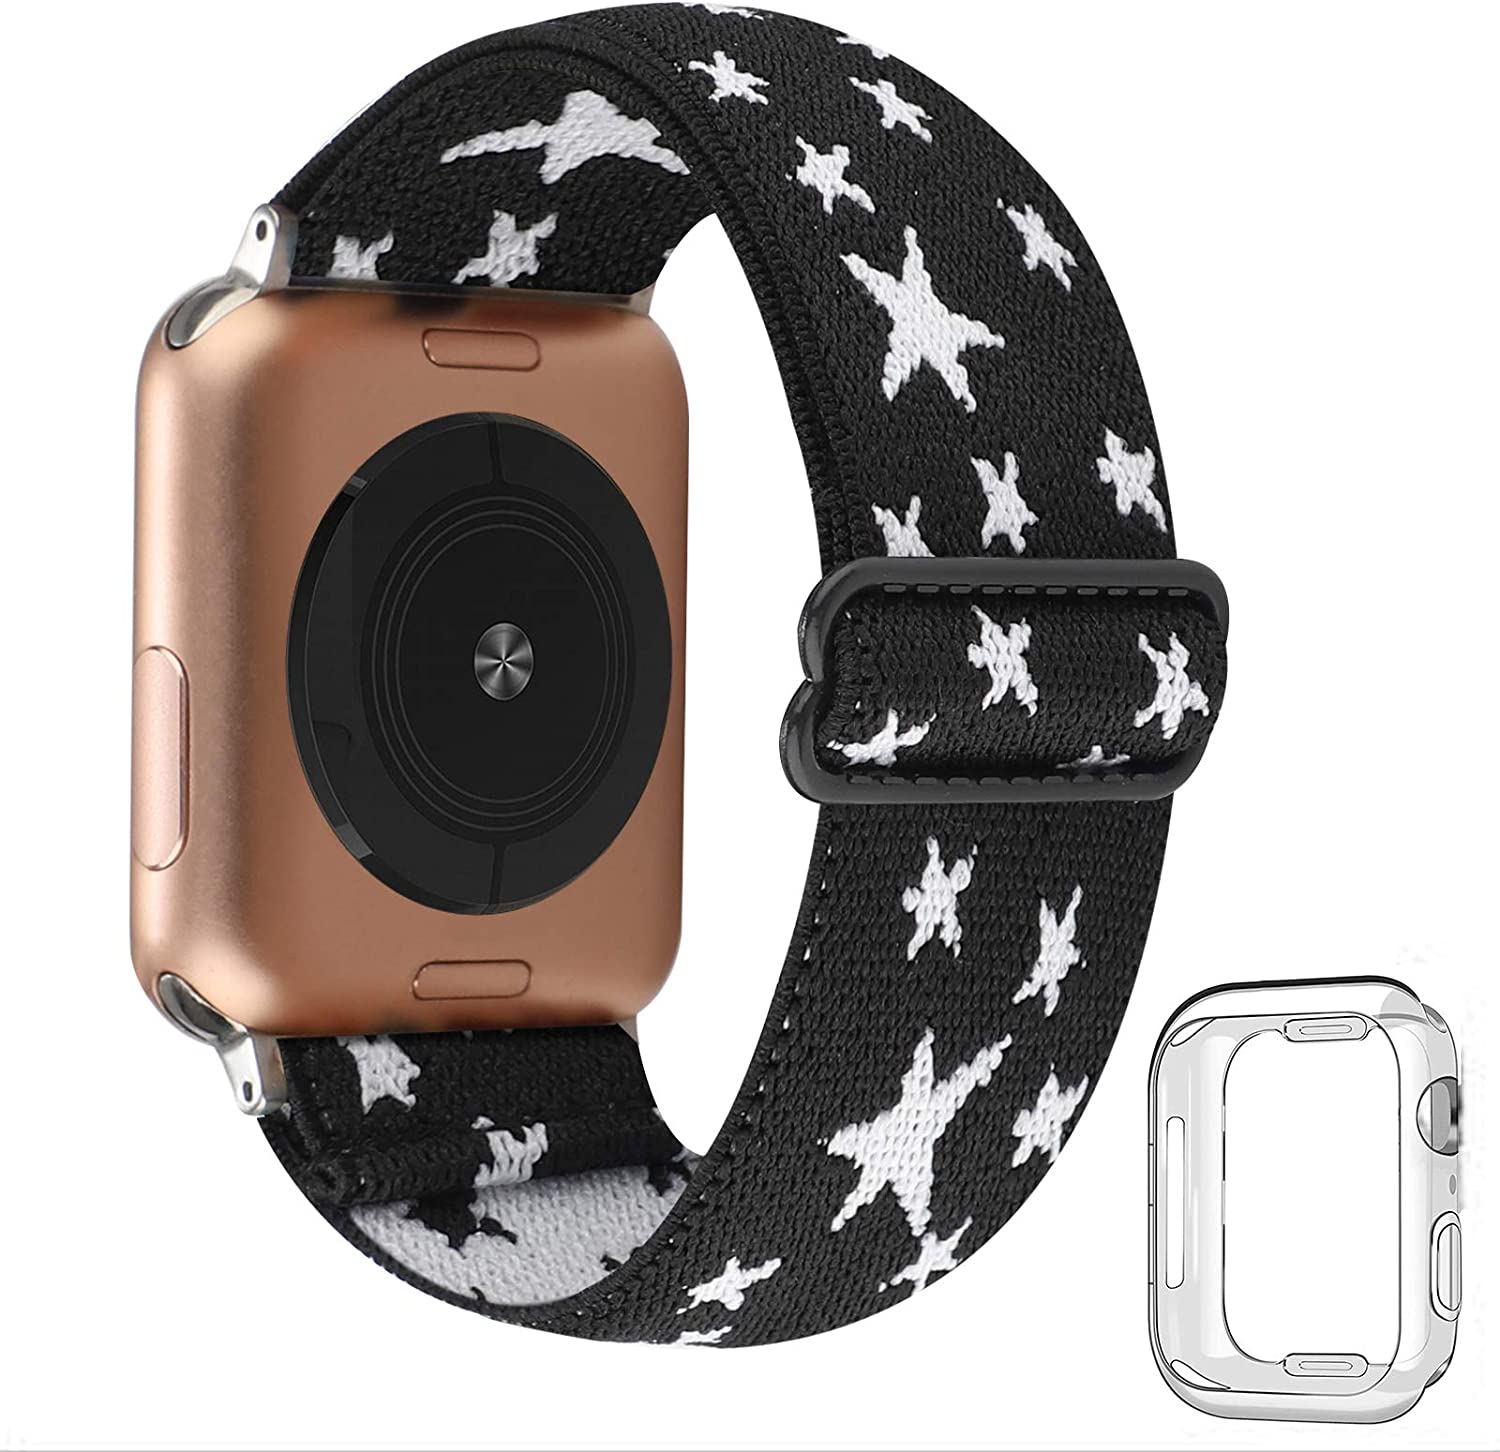 Adjustable Stretchy Solo Loop Nylon Strap Compatible with Apple Watch Elastic Band 38mm 40mm iWatch Series SE/6/5/4/3/2/1 (Black White Star with Series 6/5/4 Clear Case, 38mm/40mm)